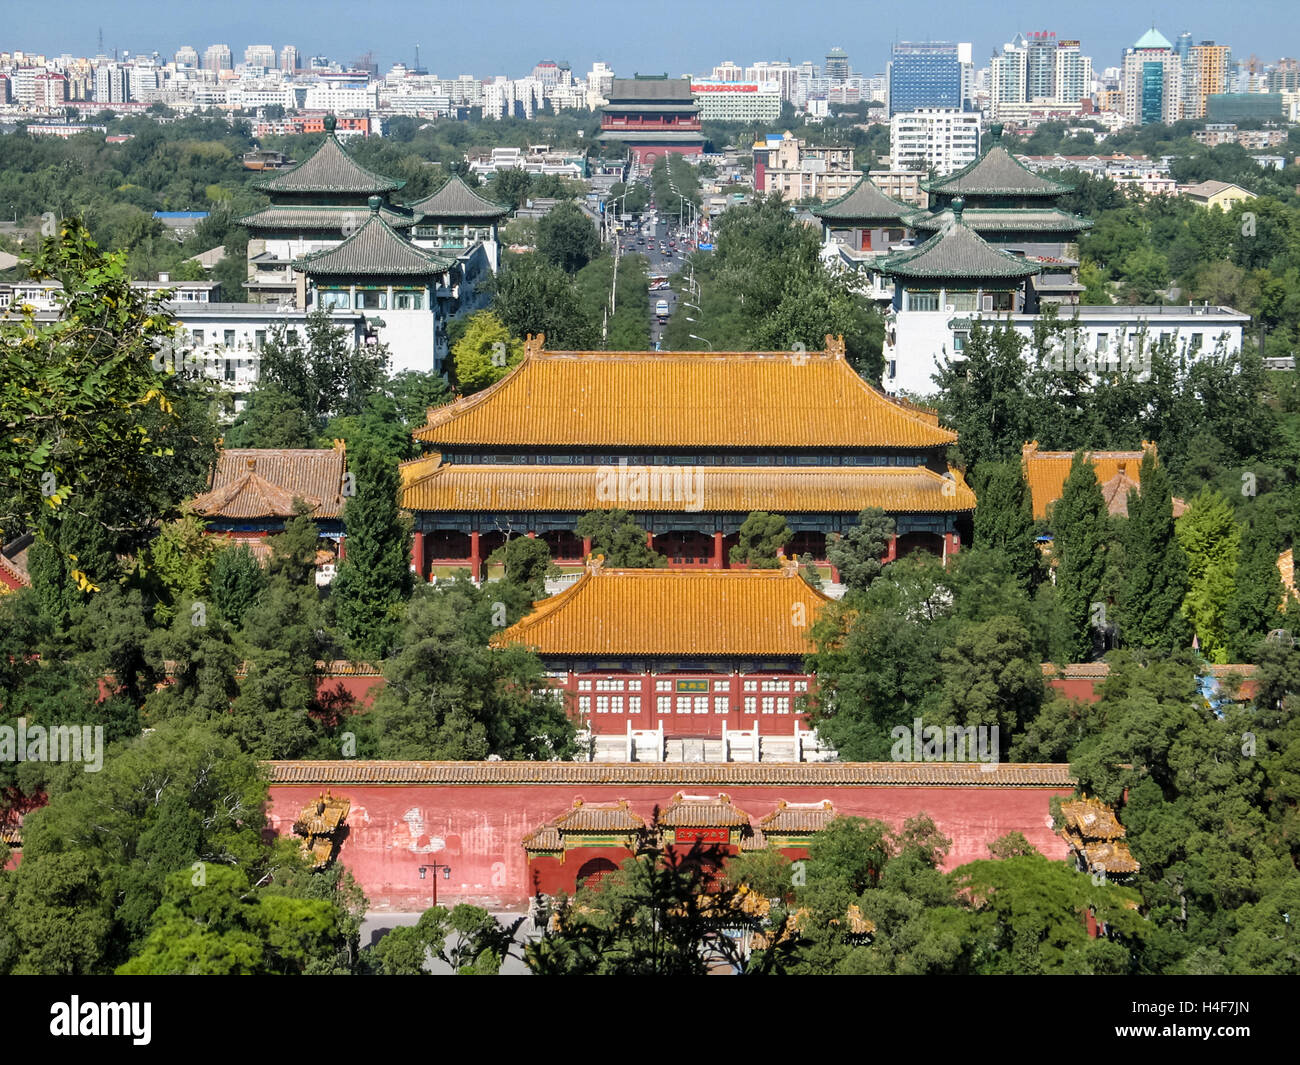 View from tower in Jingshan Park, Beijing, China, Asia - Stock Image